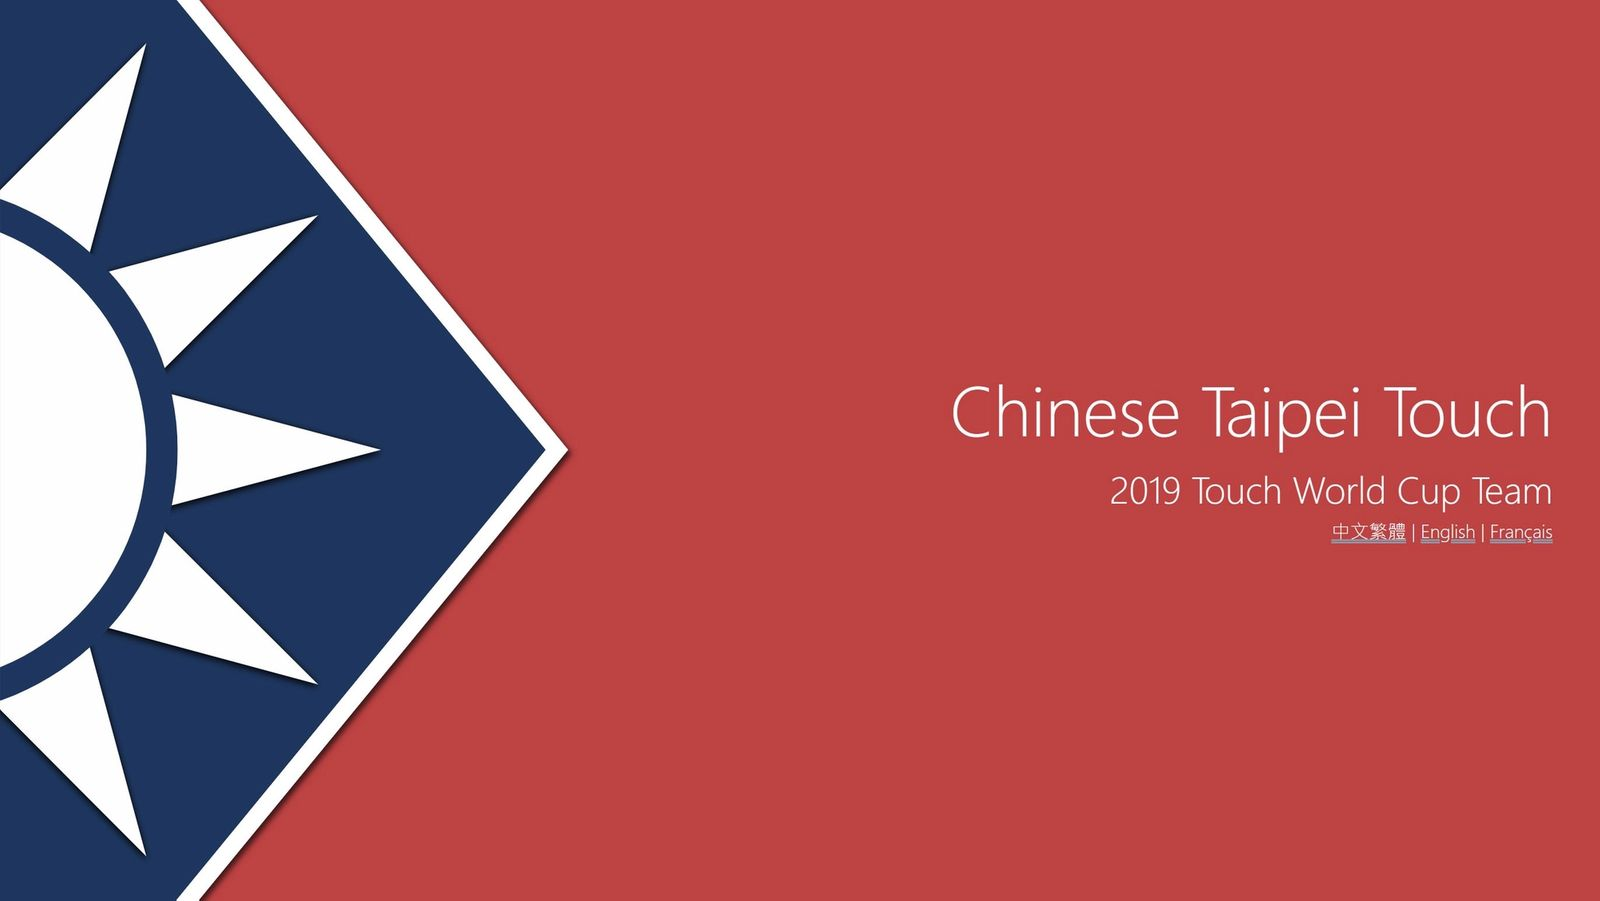 Web development case study project chinese taipei touch 2019 world cup.